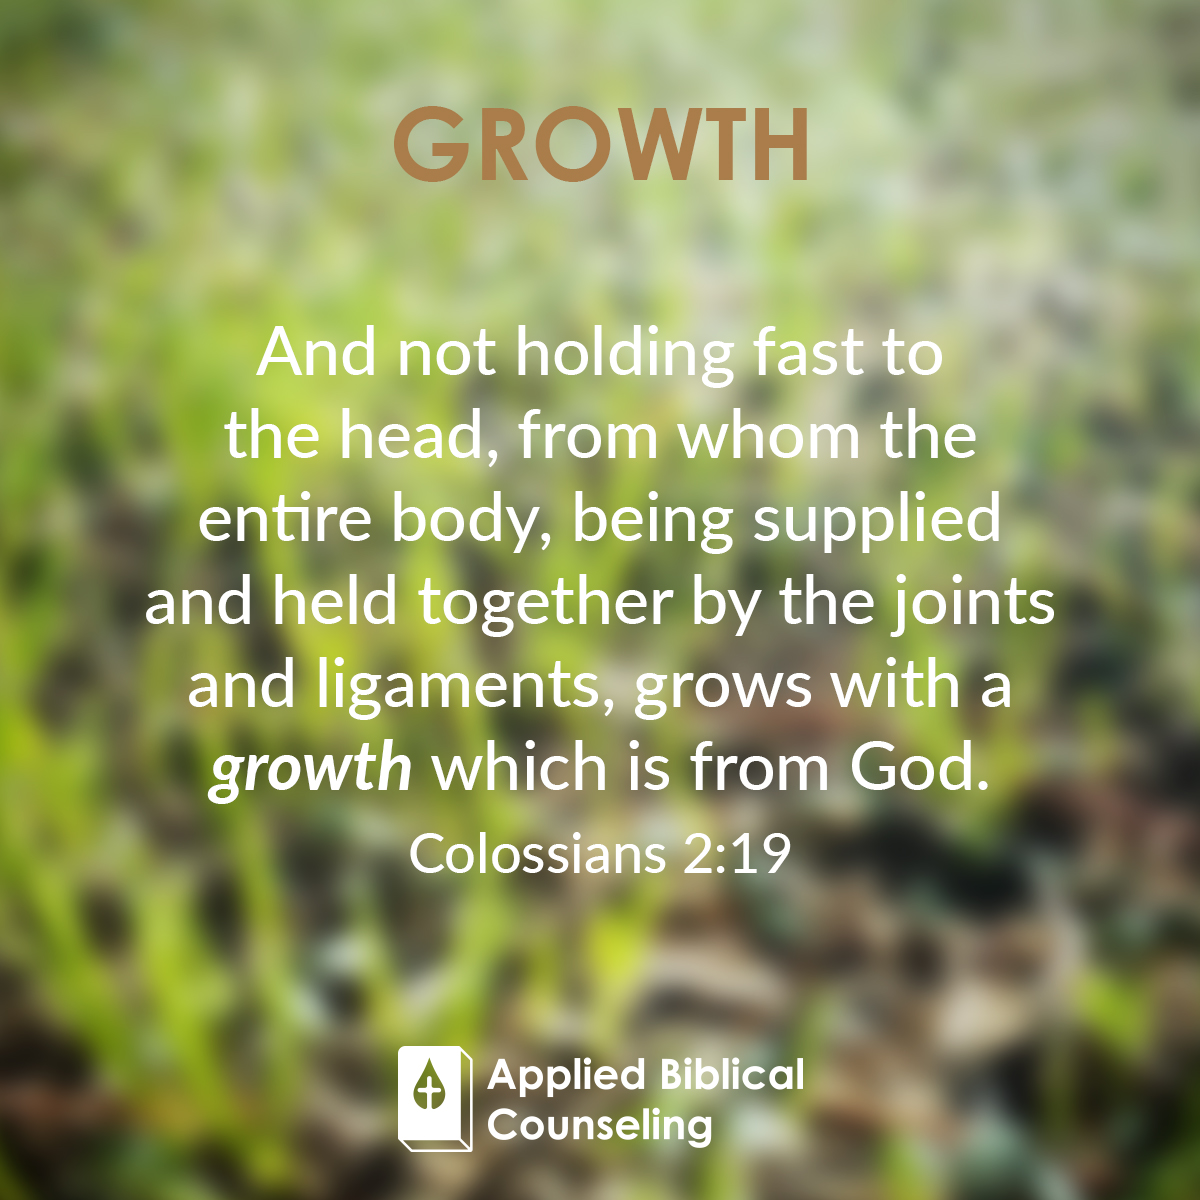 applied biblical counseling facebook w15 growth 1